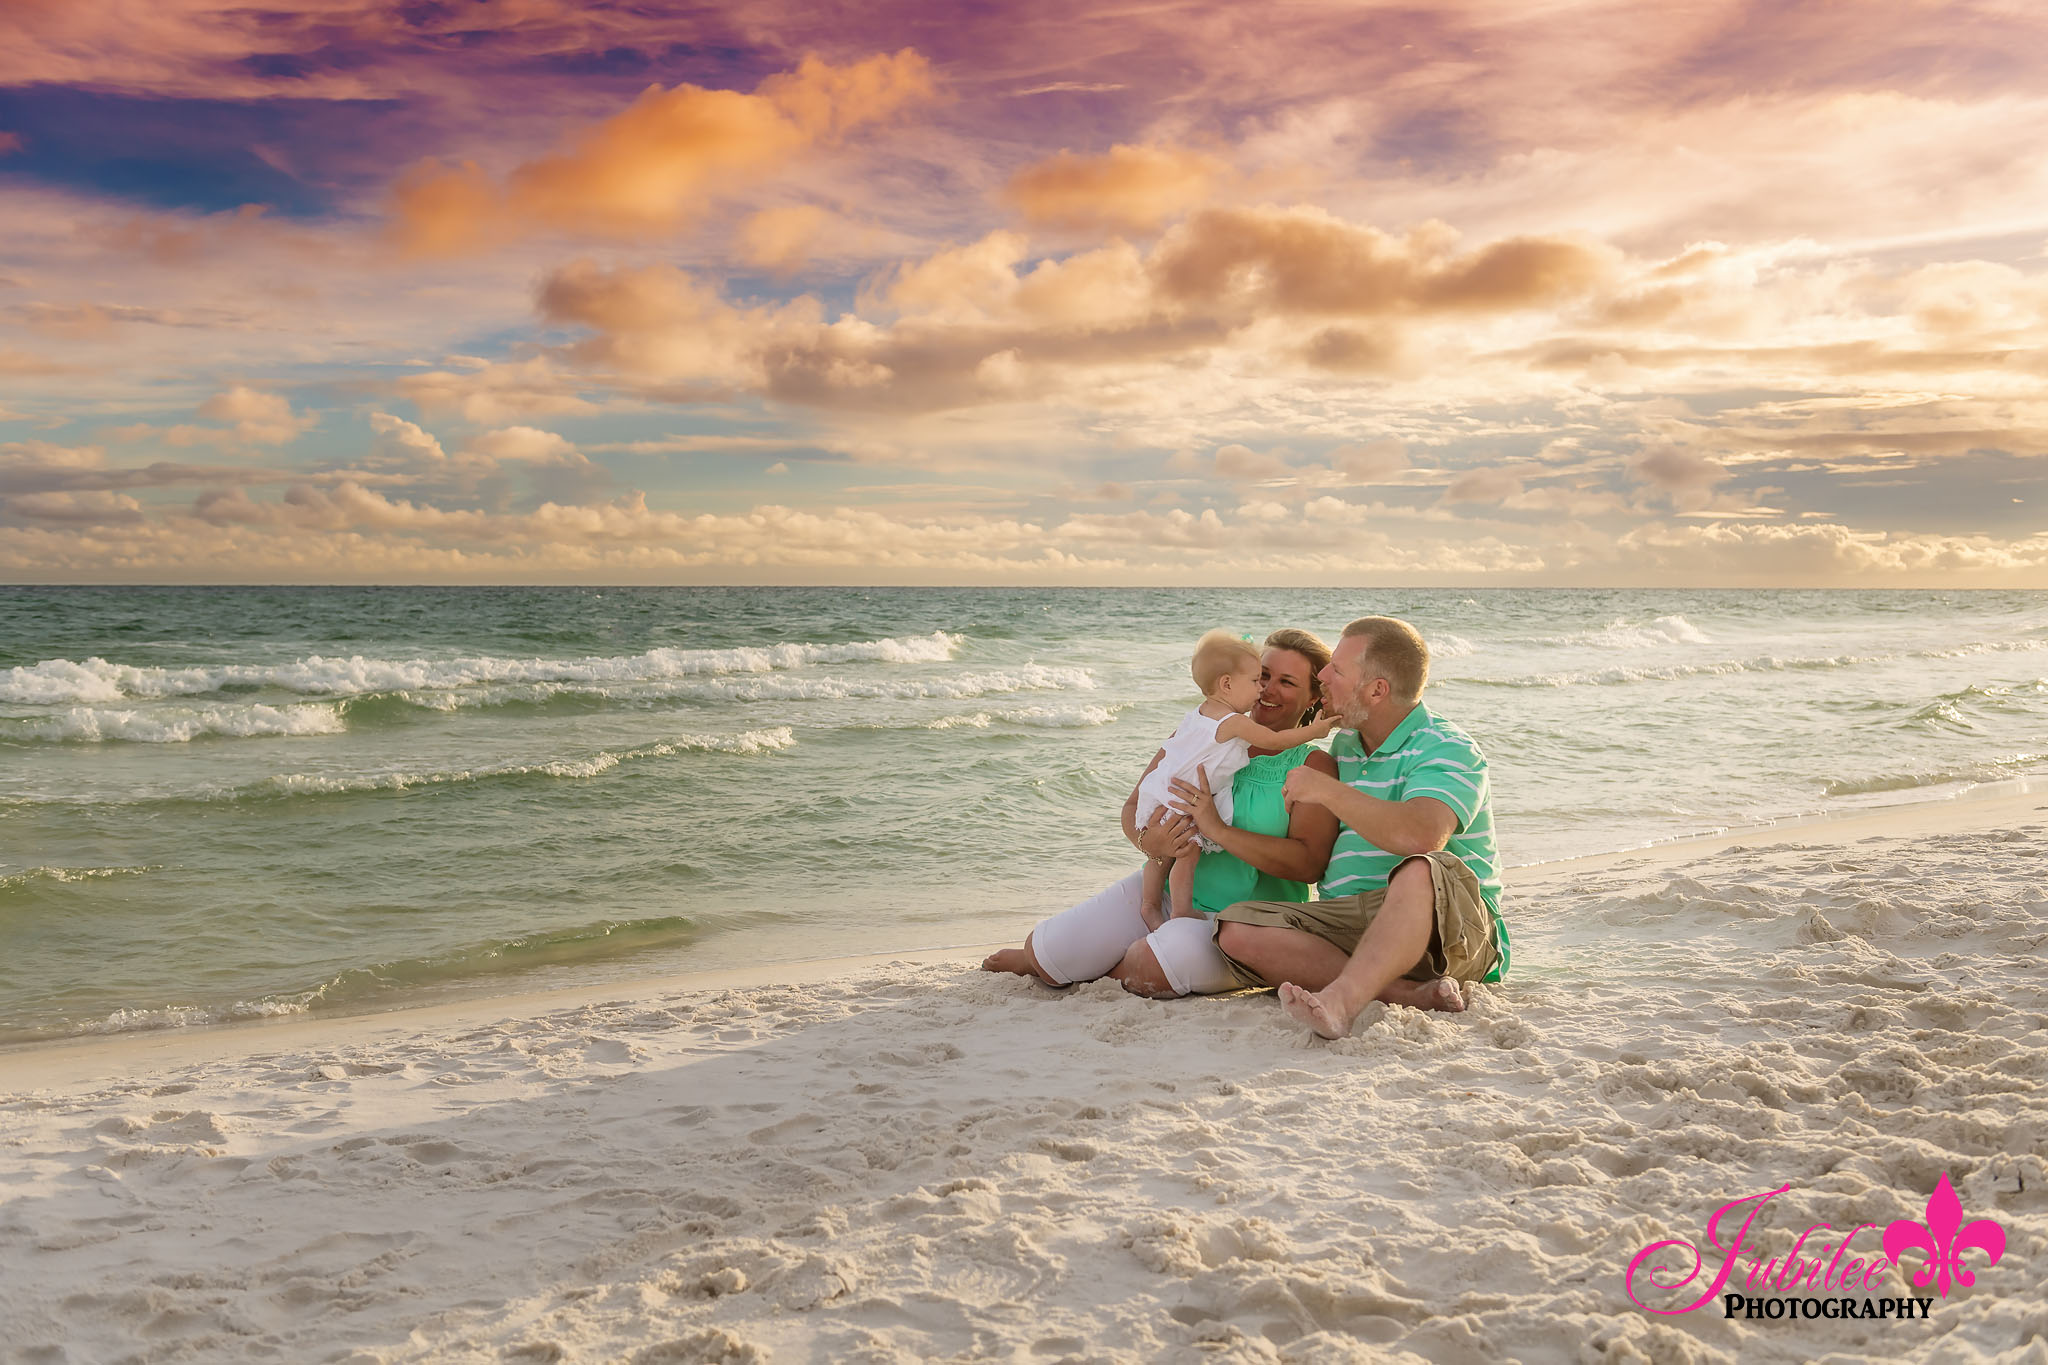 destin_beach_photographer_6219